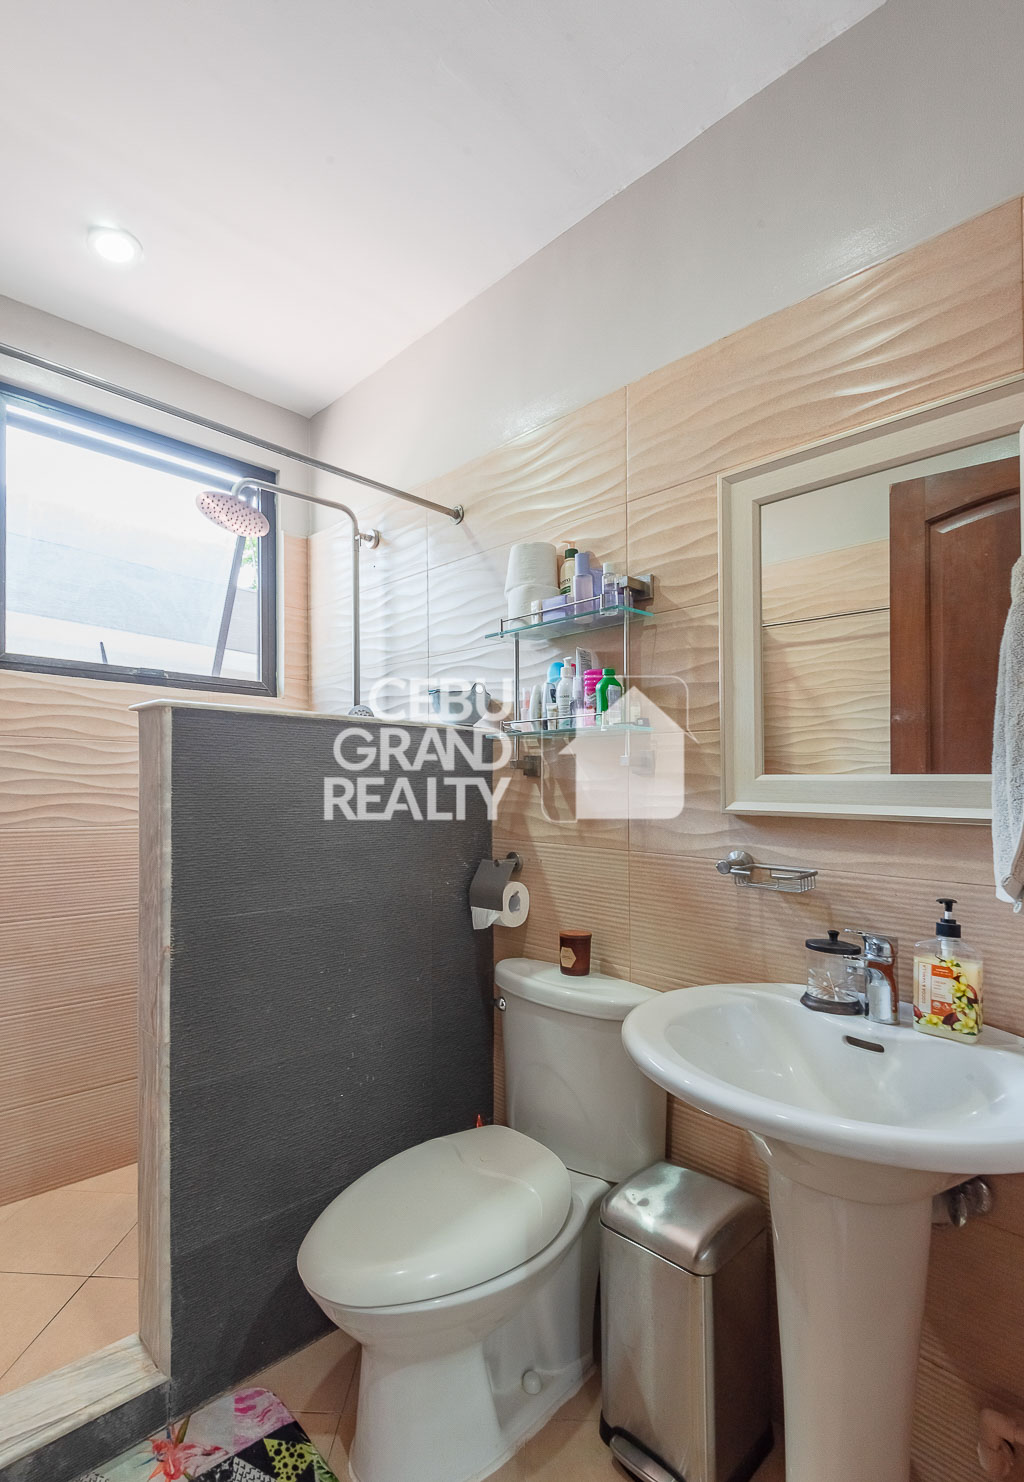 20 Bedroom House for Rent in Talamban Silver Hills   Cebu Grand Realty